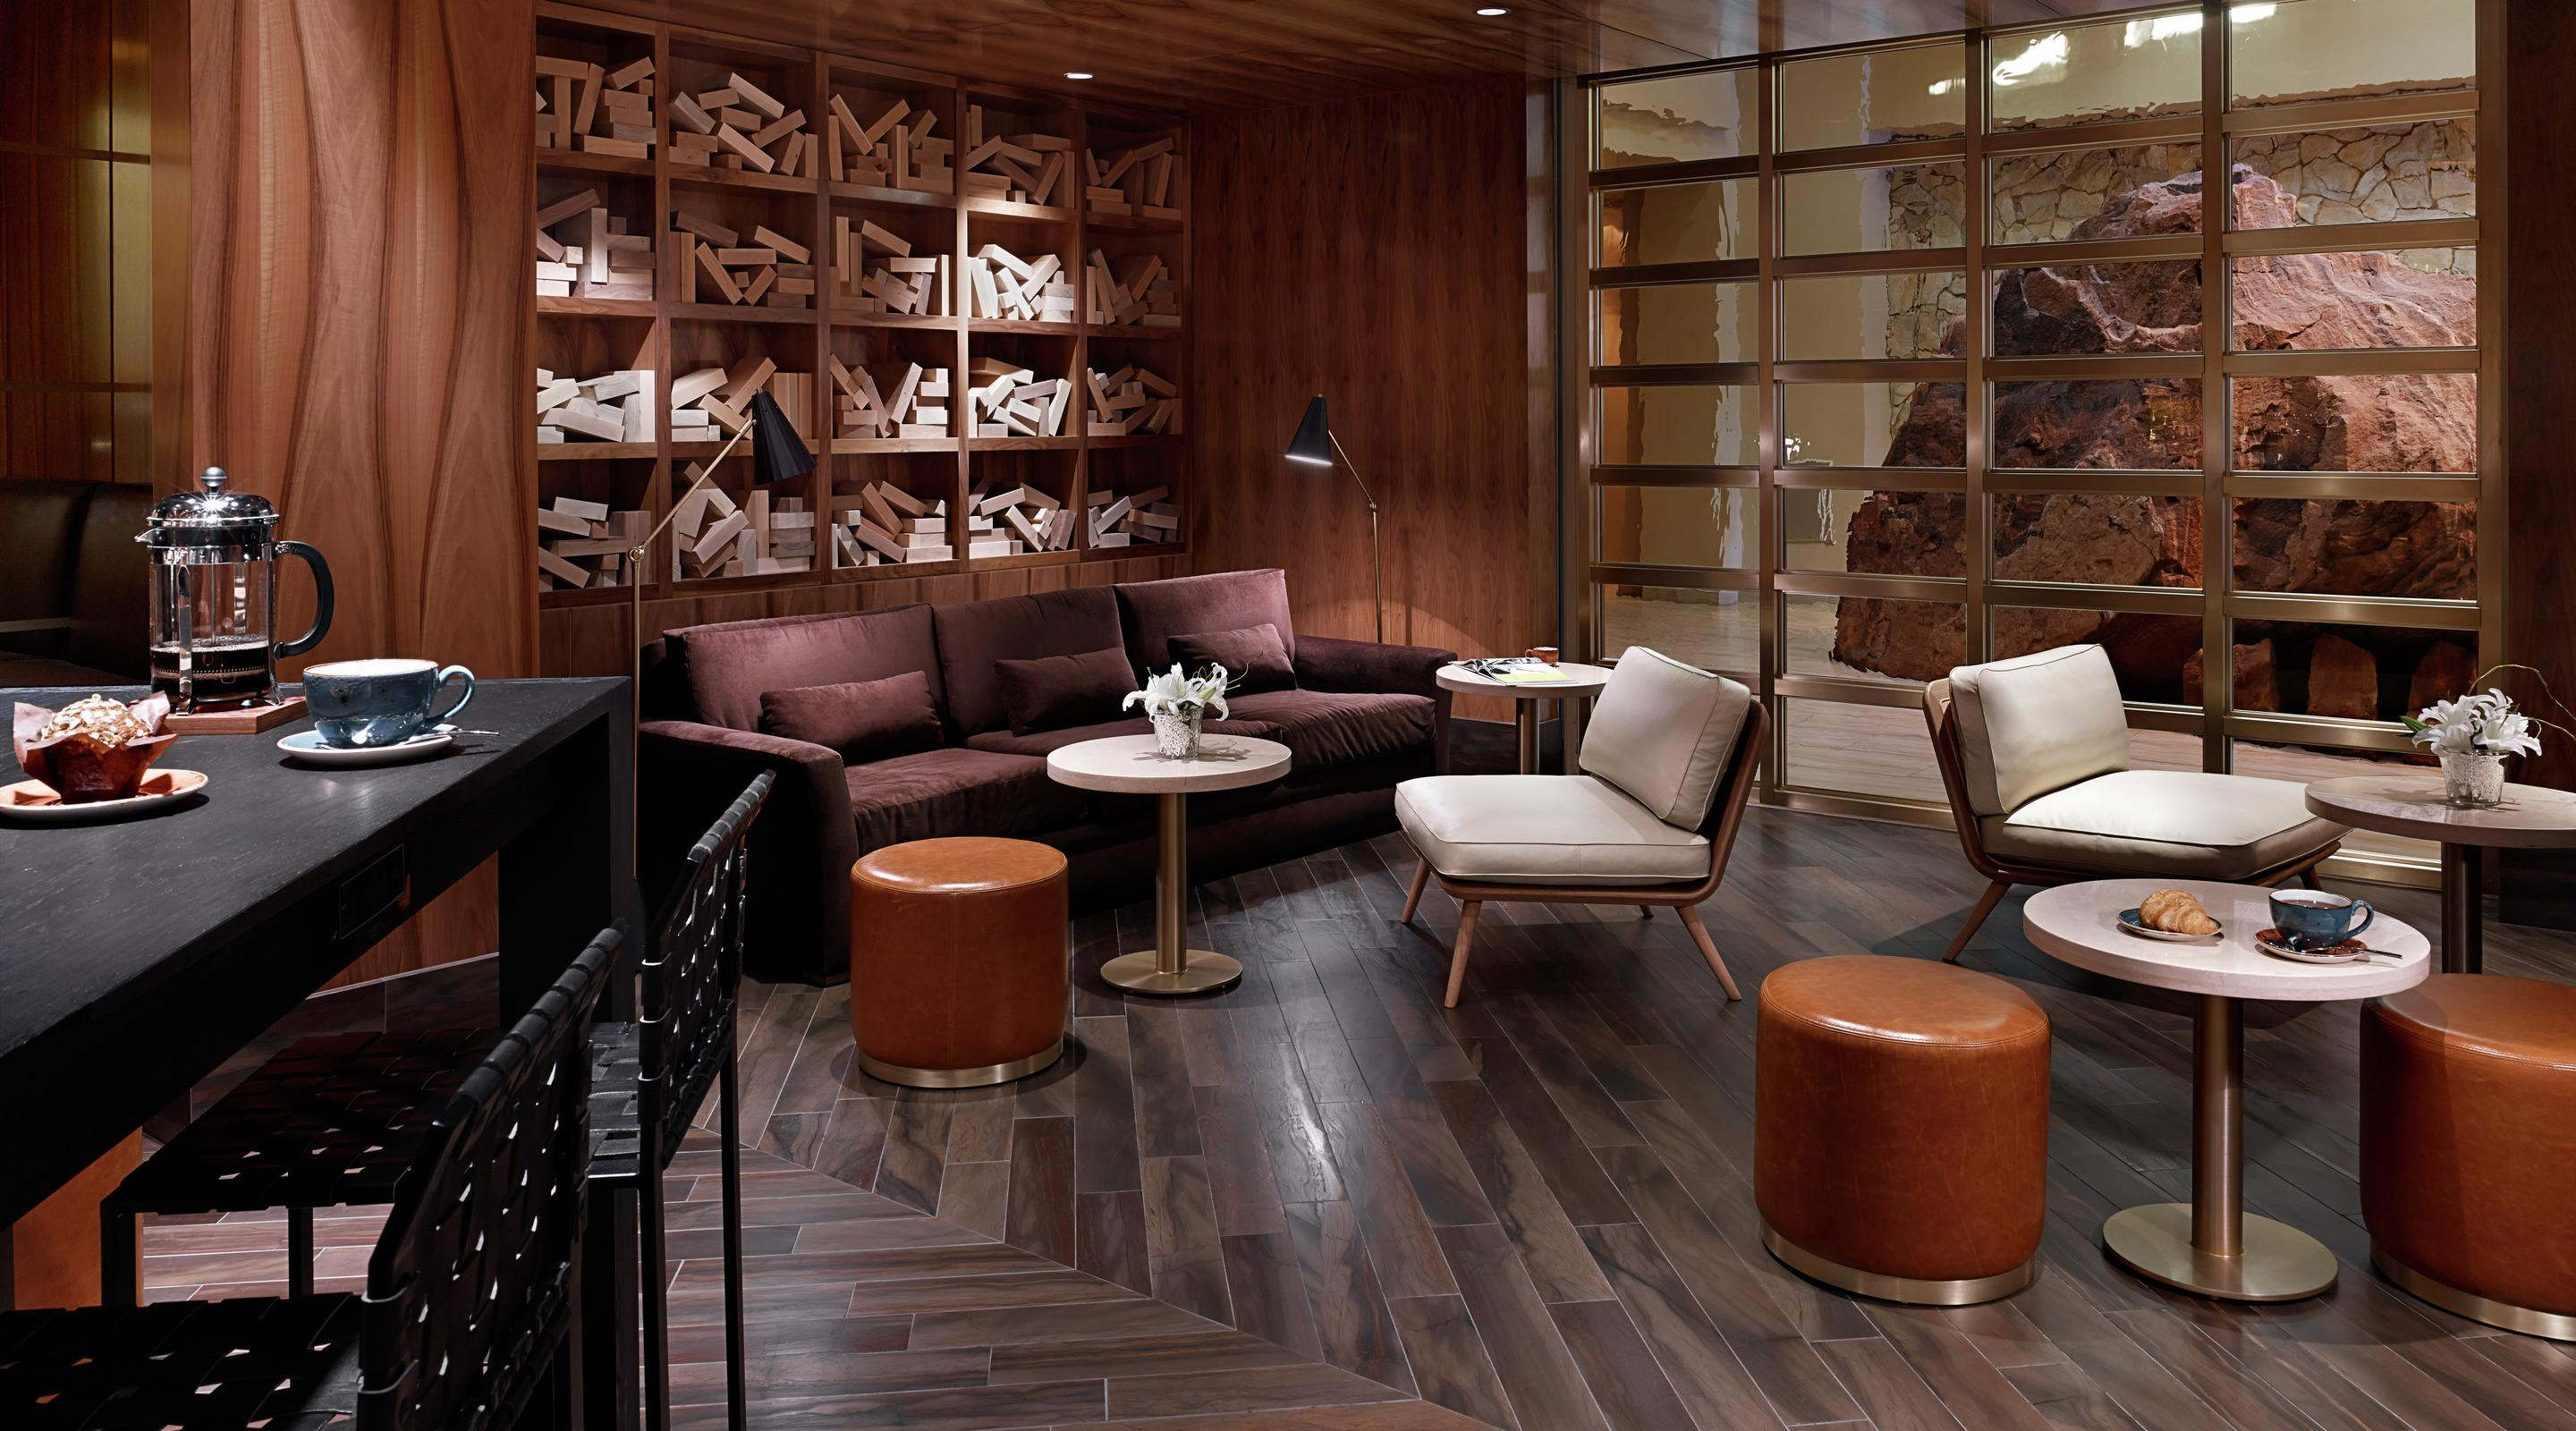 3940 Coffee and Tea offers a comfortable surroundings, where guests can lounge and unwind in our alluring living room.